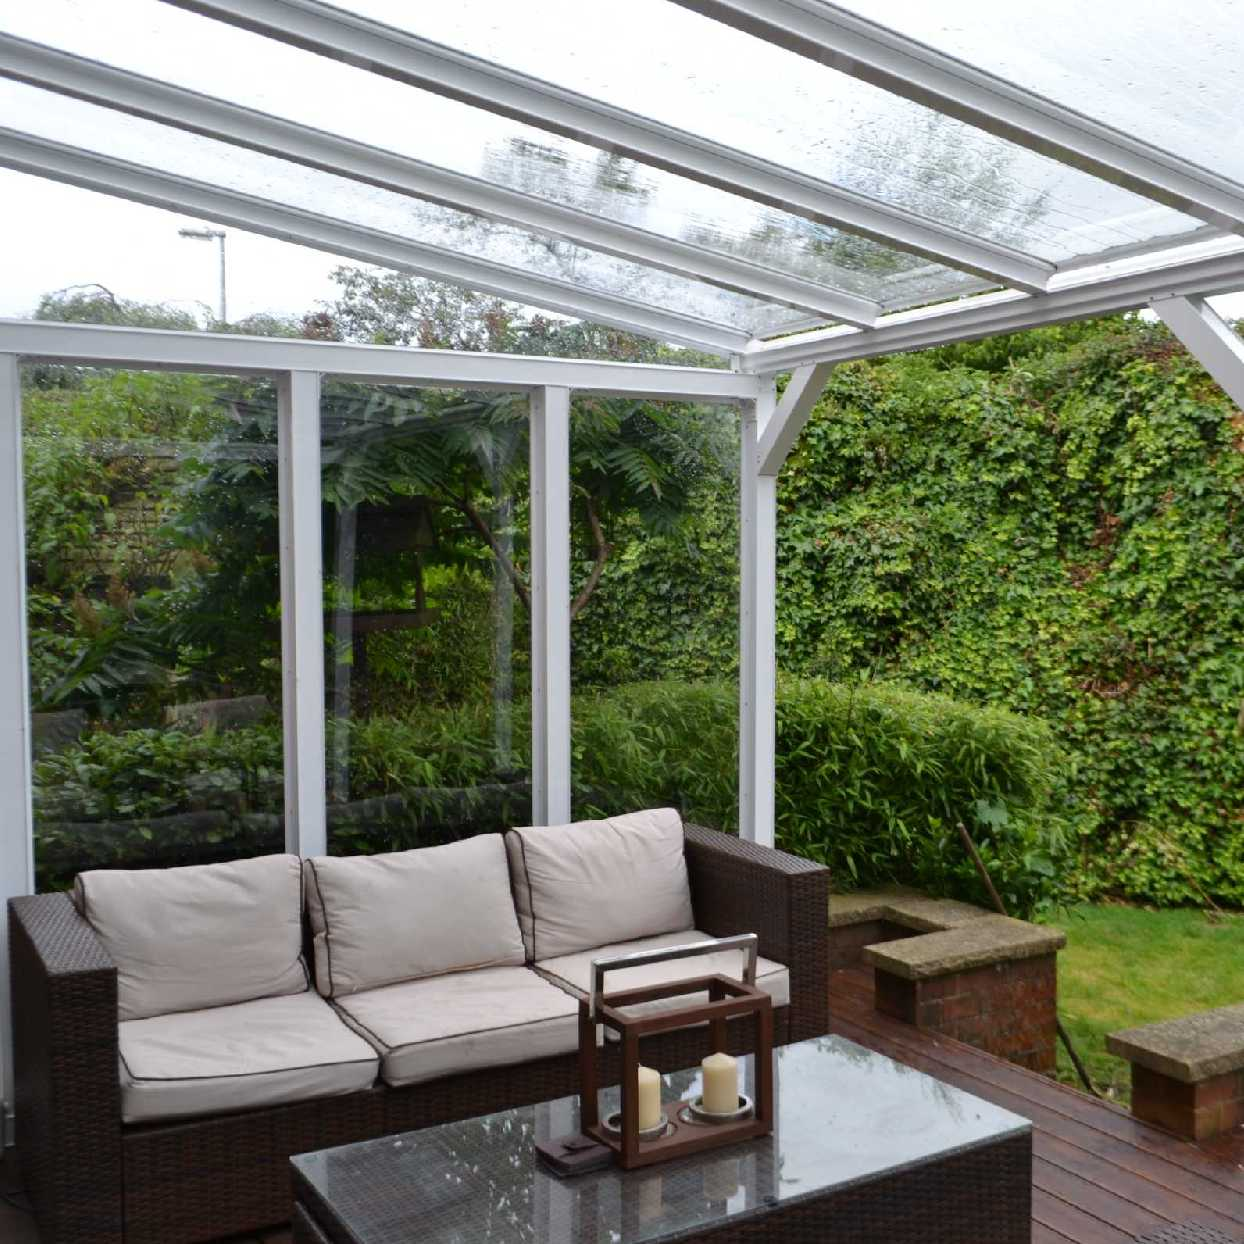 Great selection of Omega Smart White Lean-To Canopy with 16mm Polycarbonate Glazing - 5.2m (W) x 2.0m (P), (3) Supporting Posts